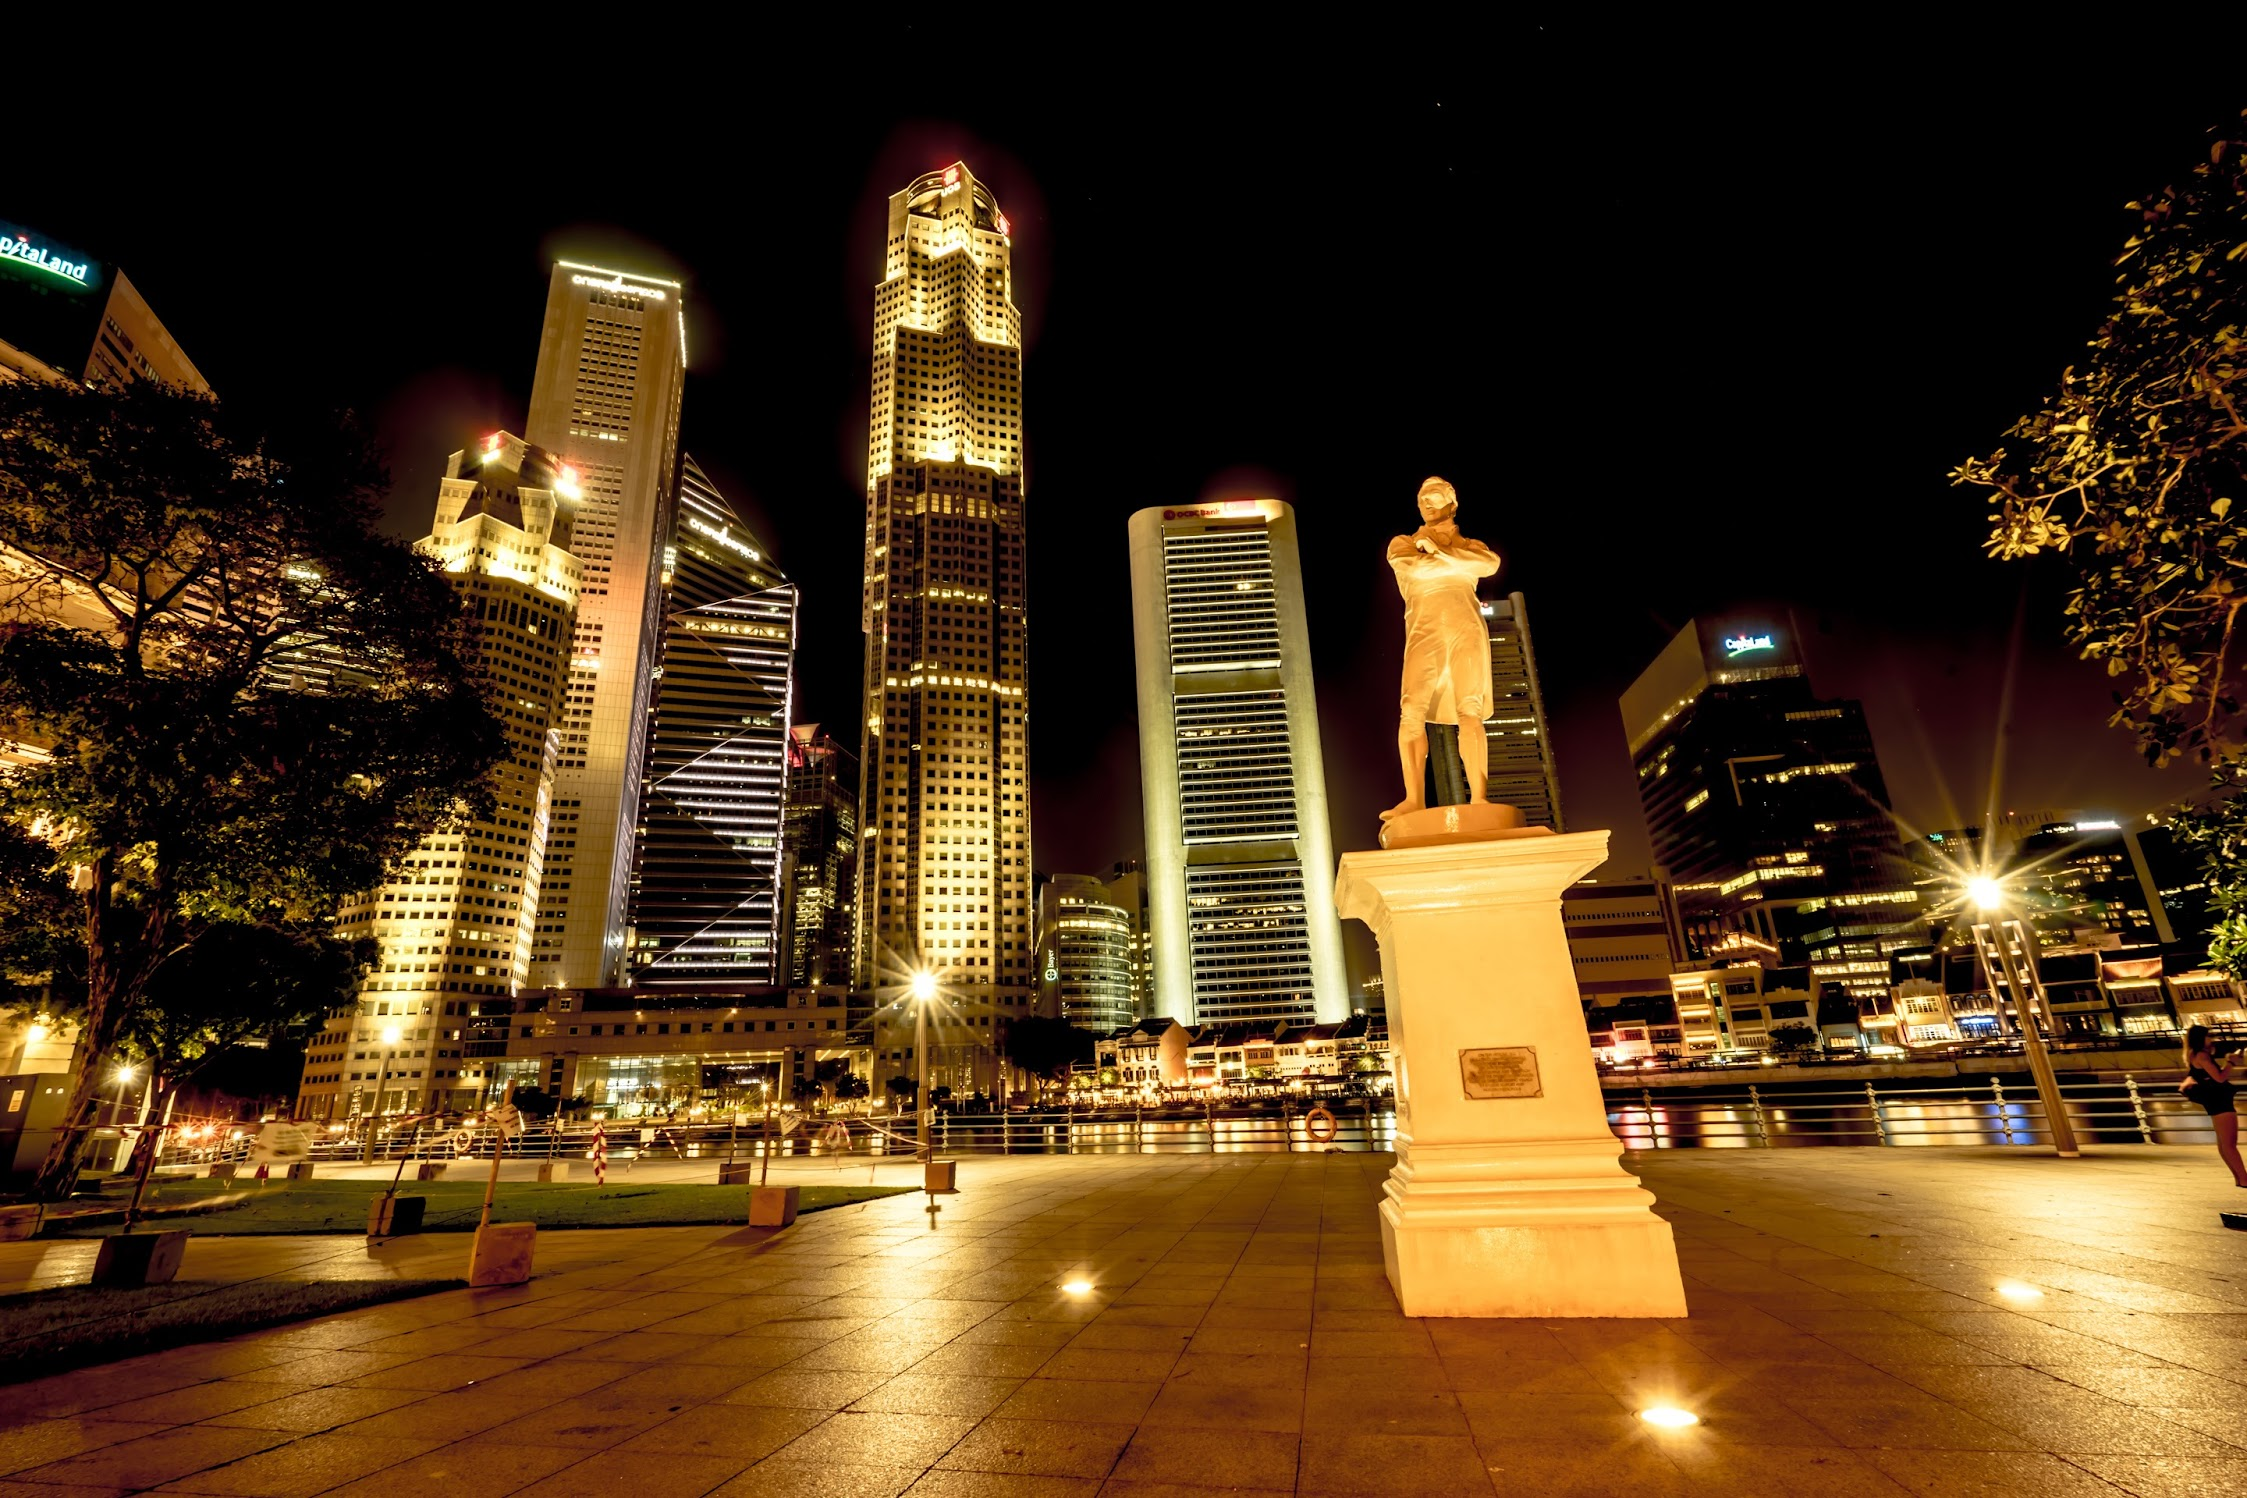 Singapore Sir Stamford Raffles landing Site night view1